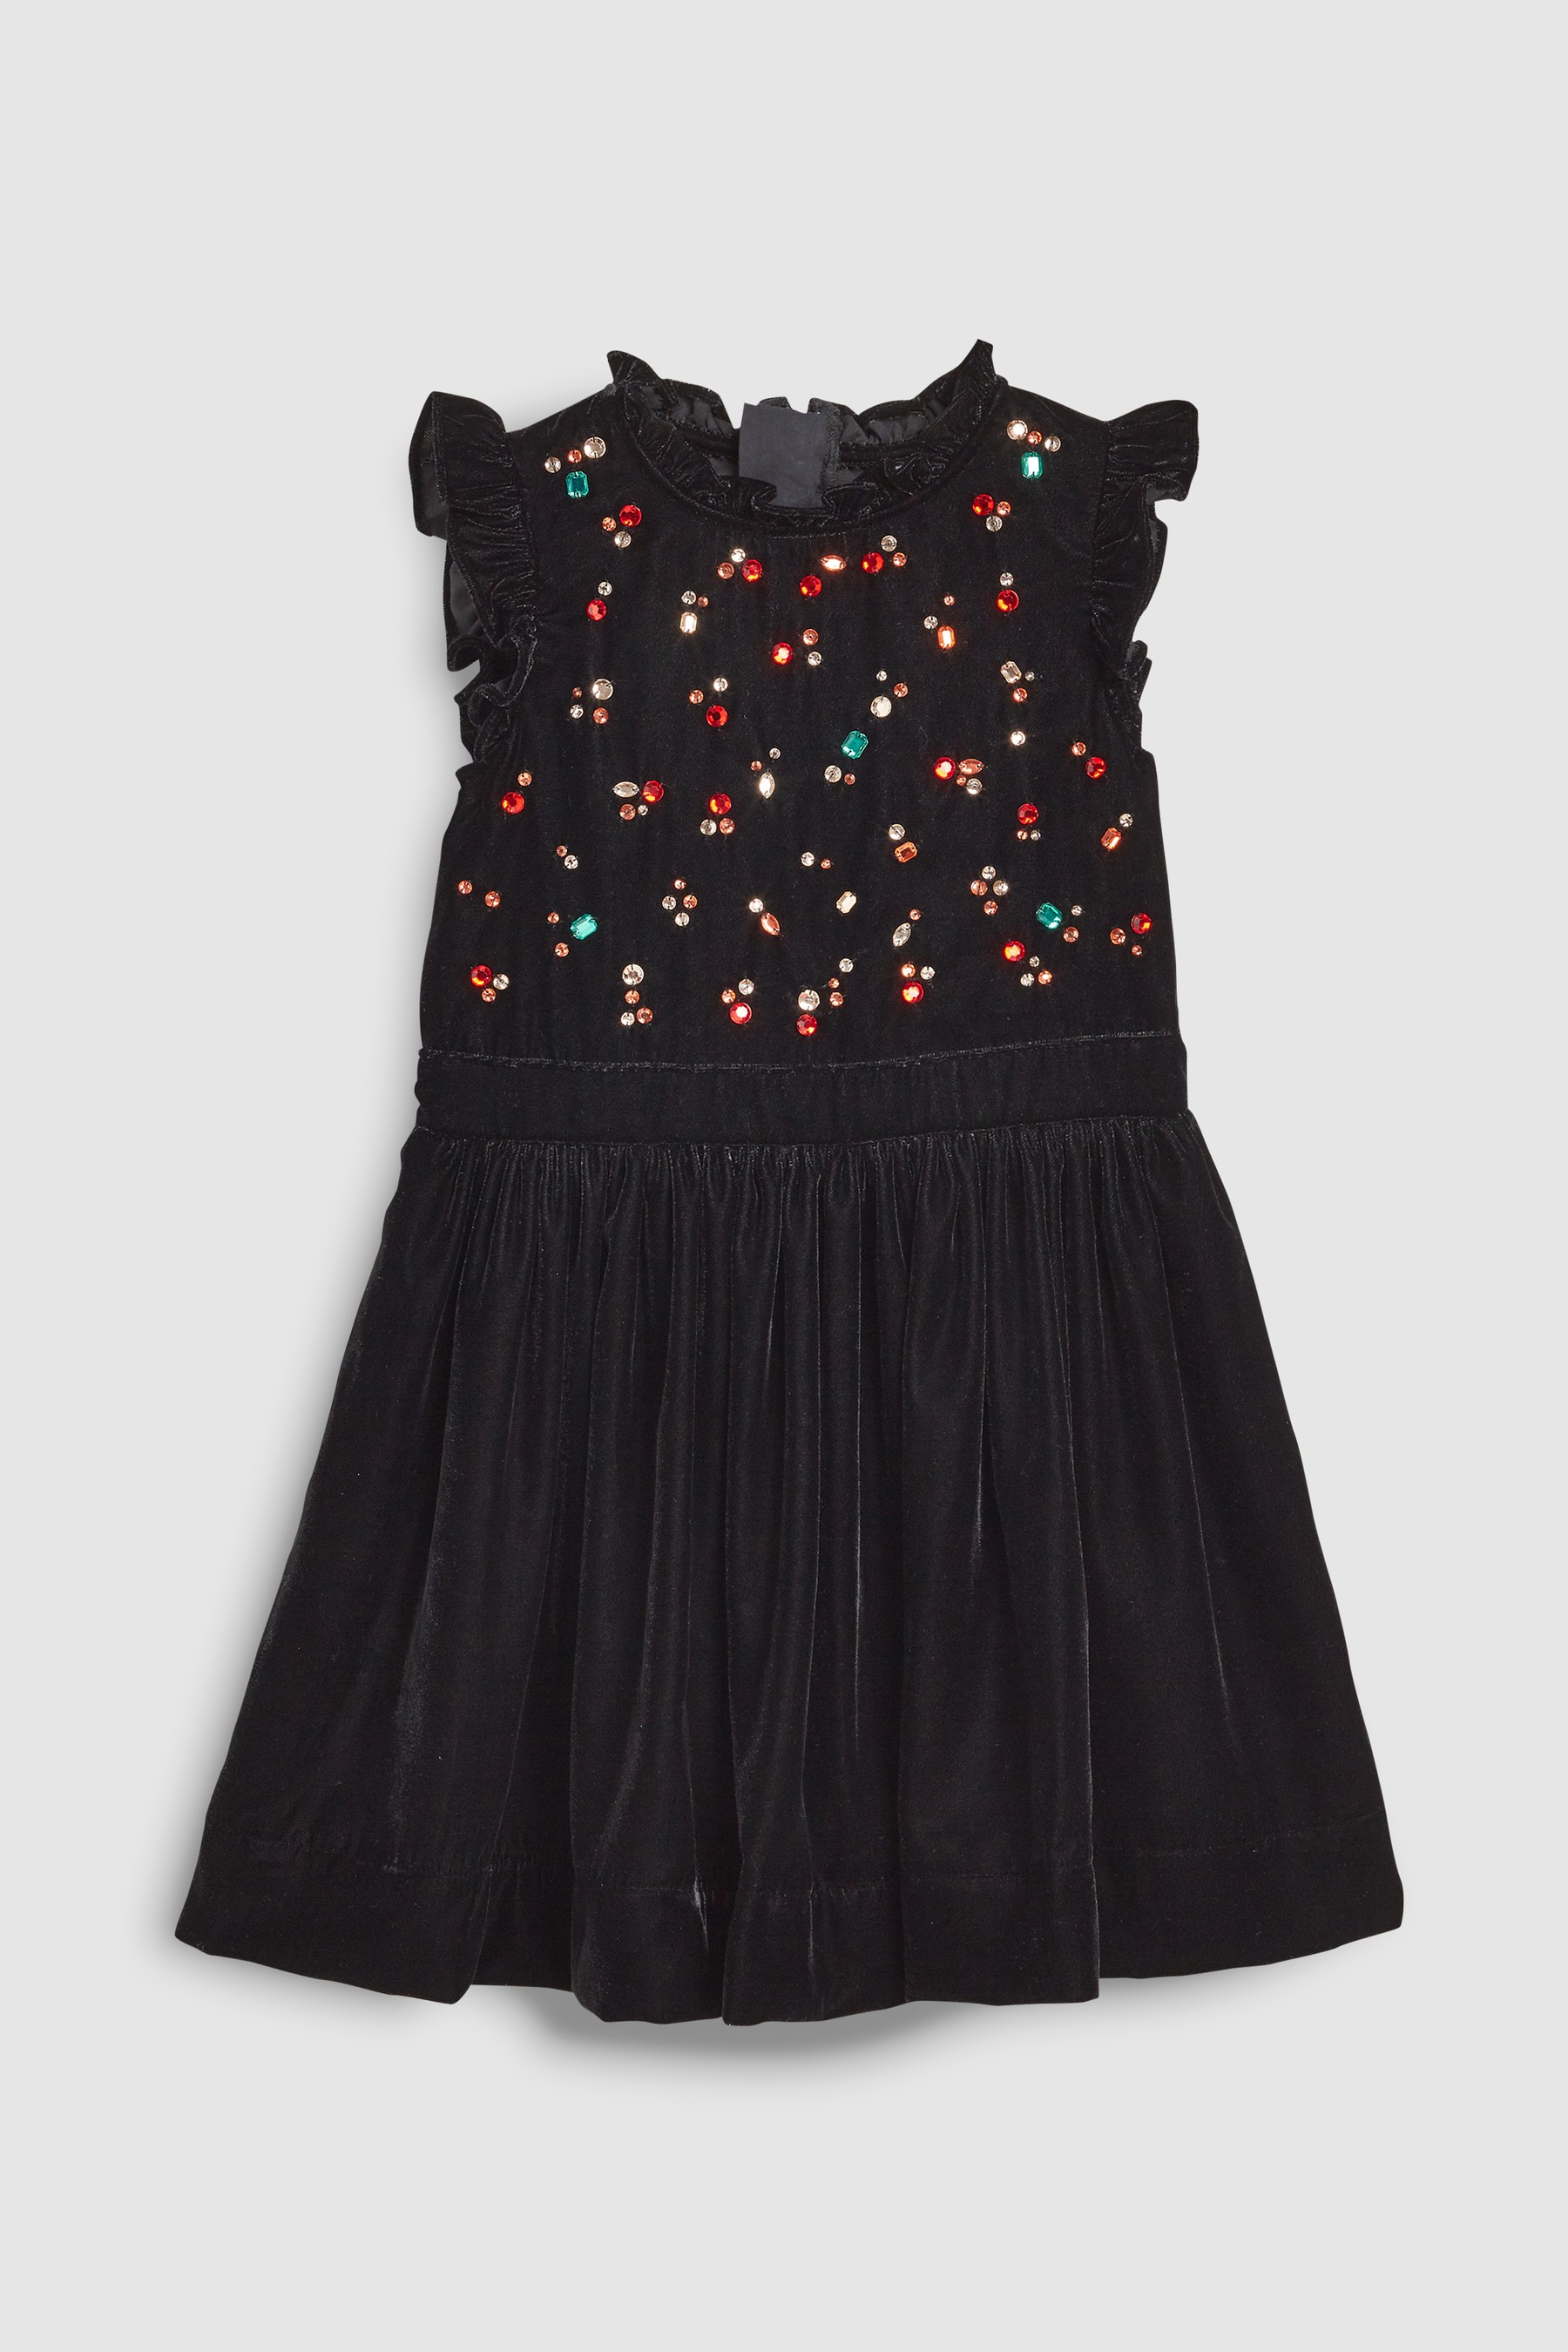 c12d46606f79 Girls Next Black Velvet Gem Dress (3-16yrs) - Black